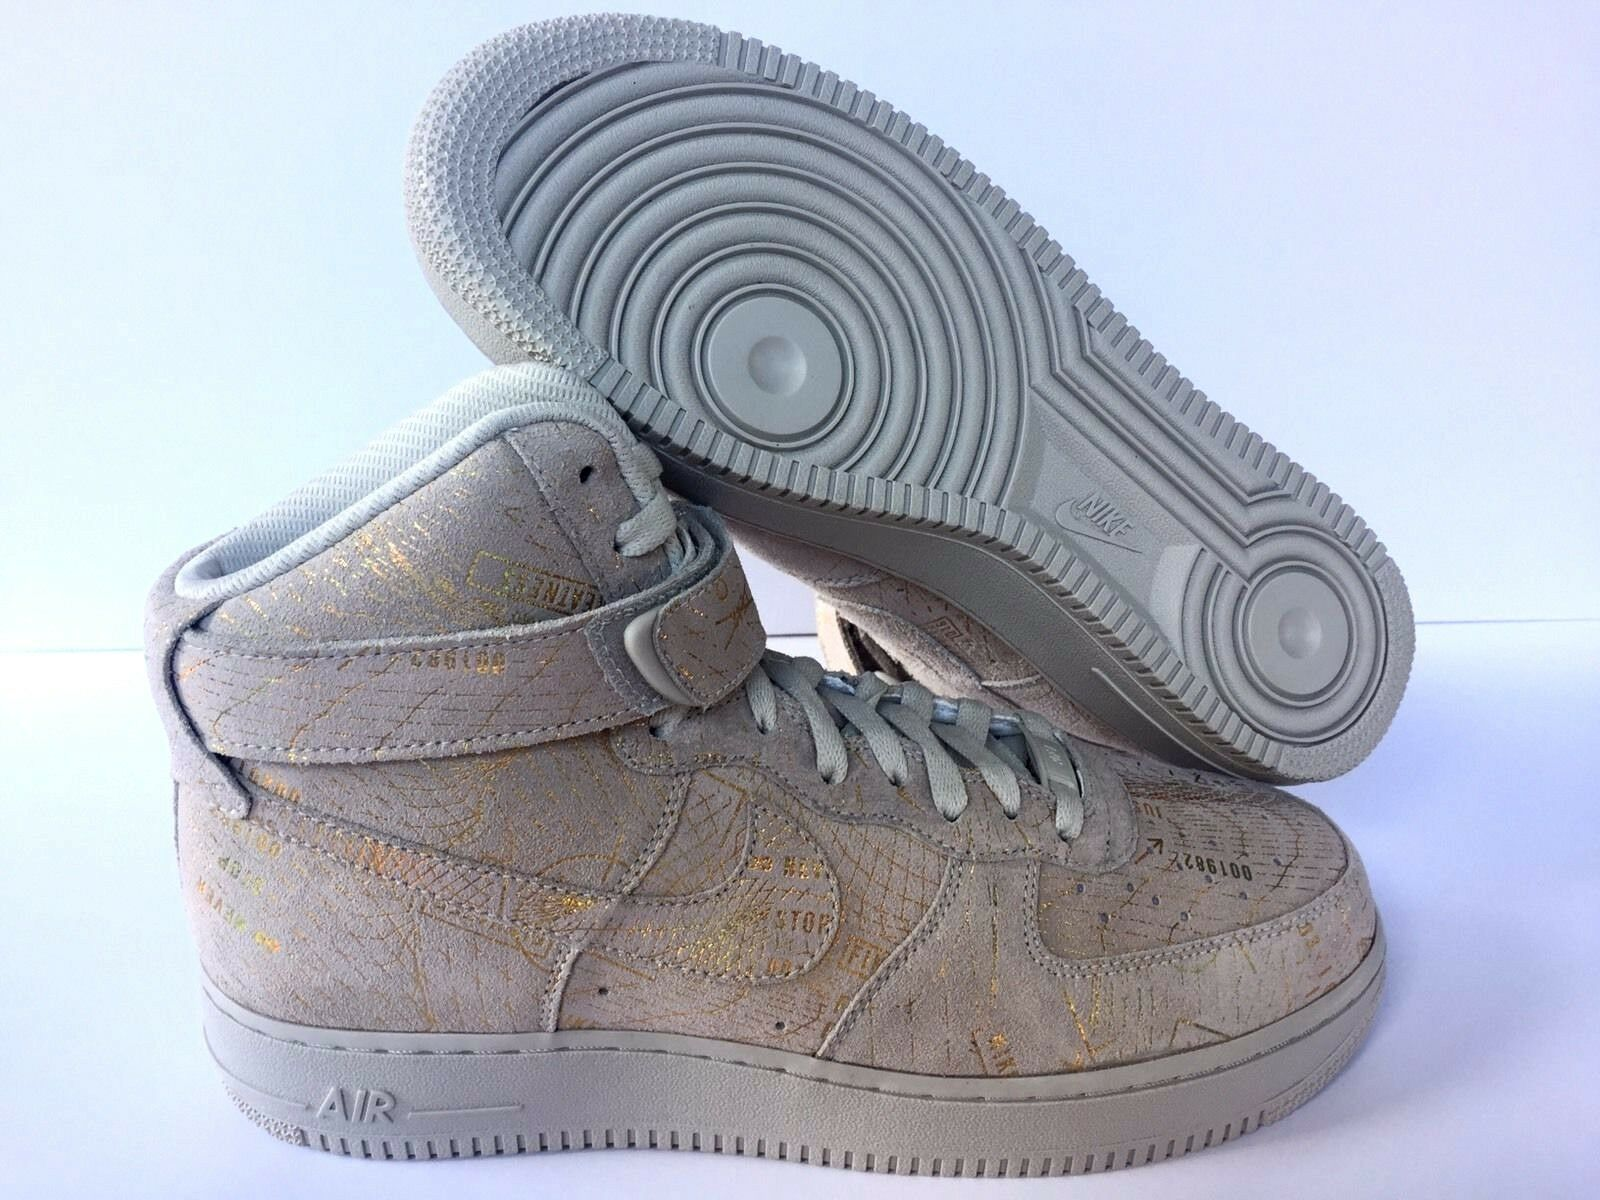 NIKEiD WMN AIR [ FORCE 1 NEW BEIGE/GOLD [ AIR 849071-993 ] US SZ WMN 12 MEN 11 977fdd